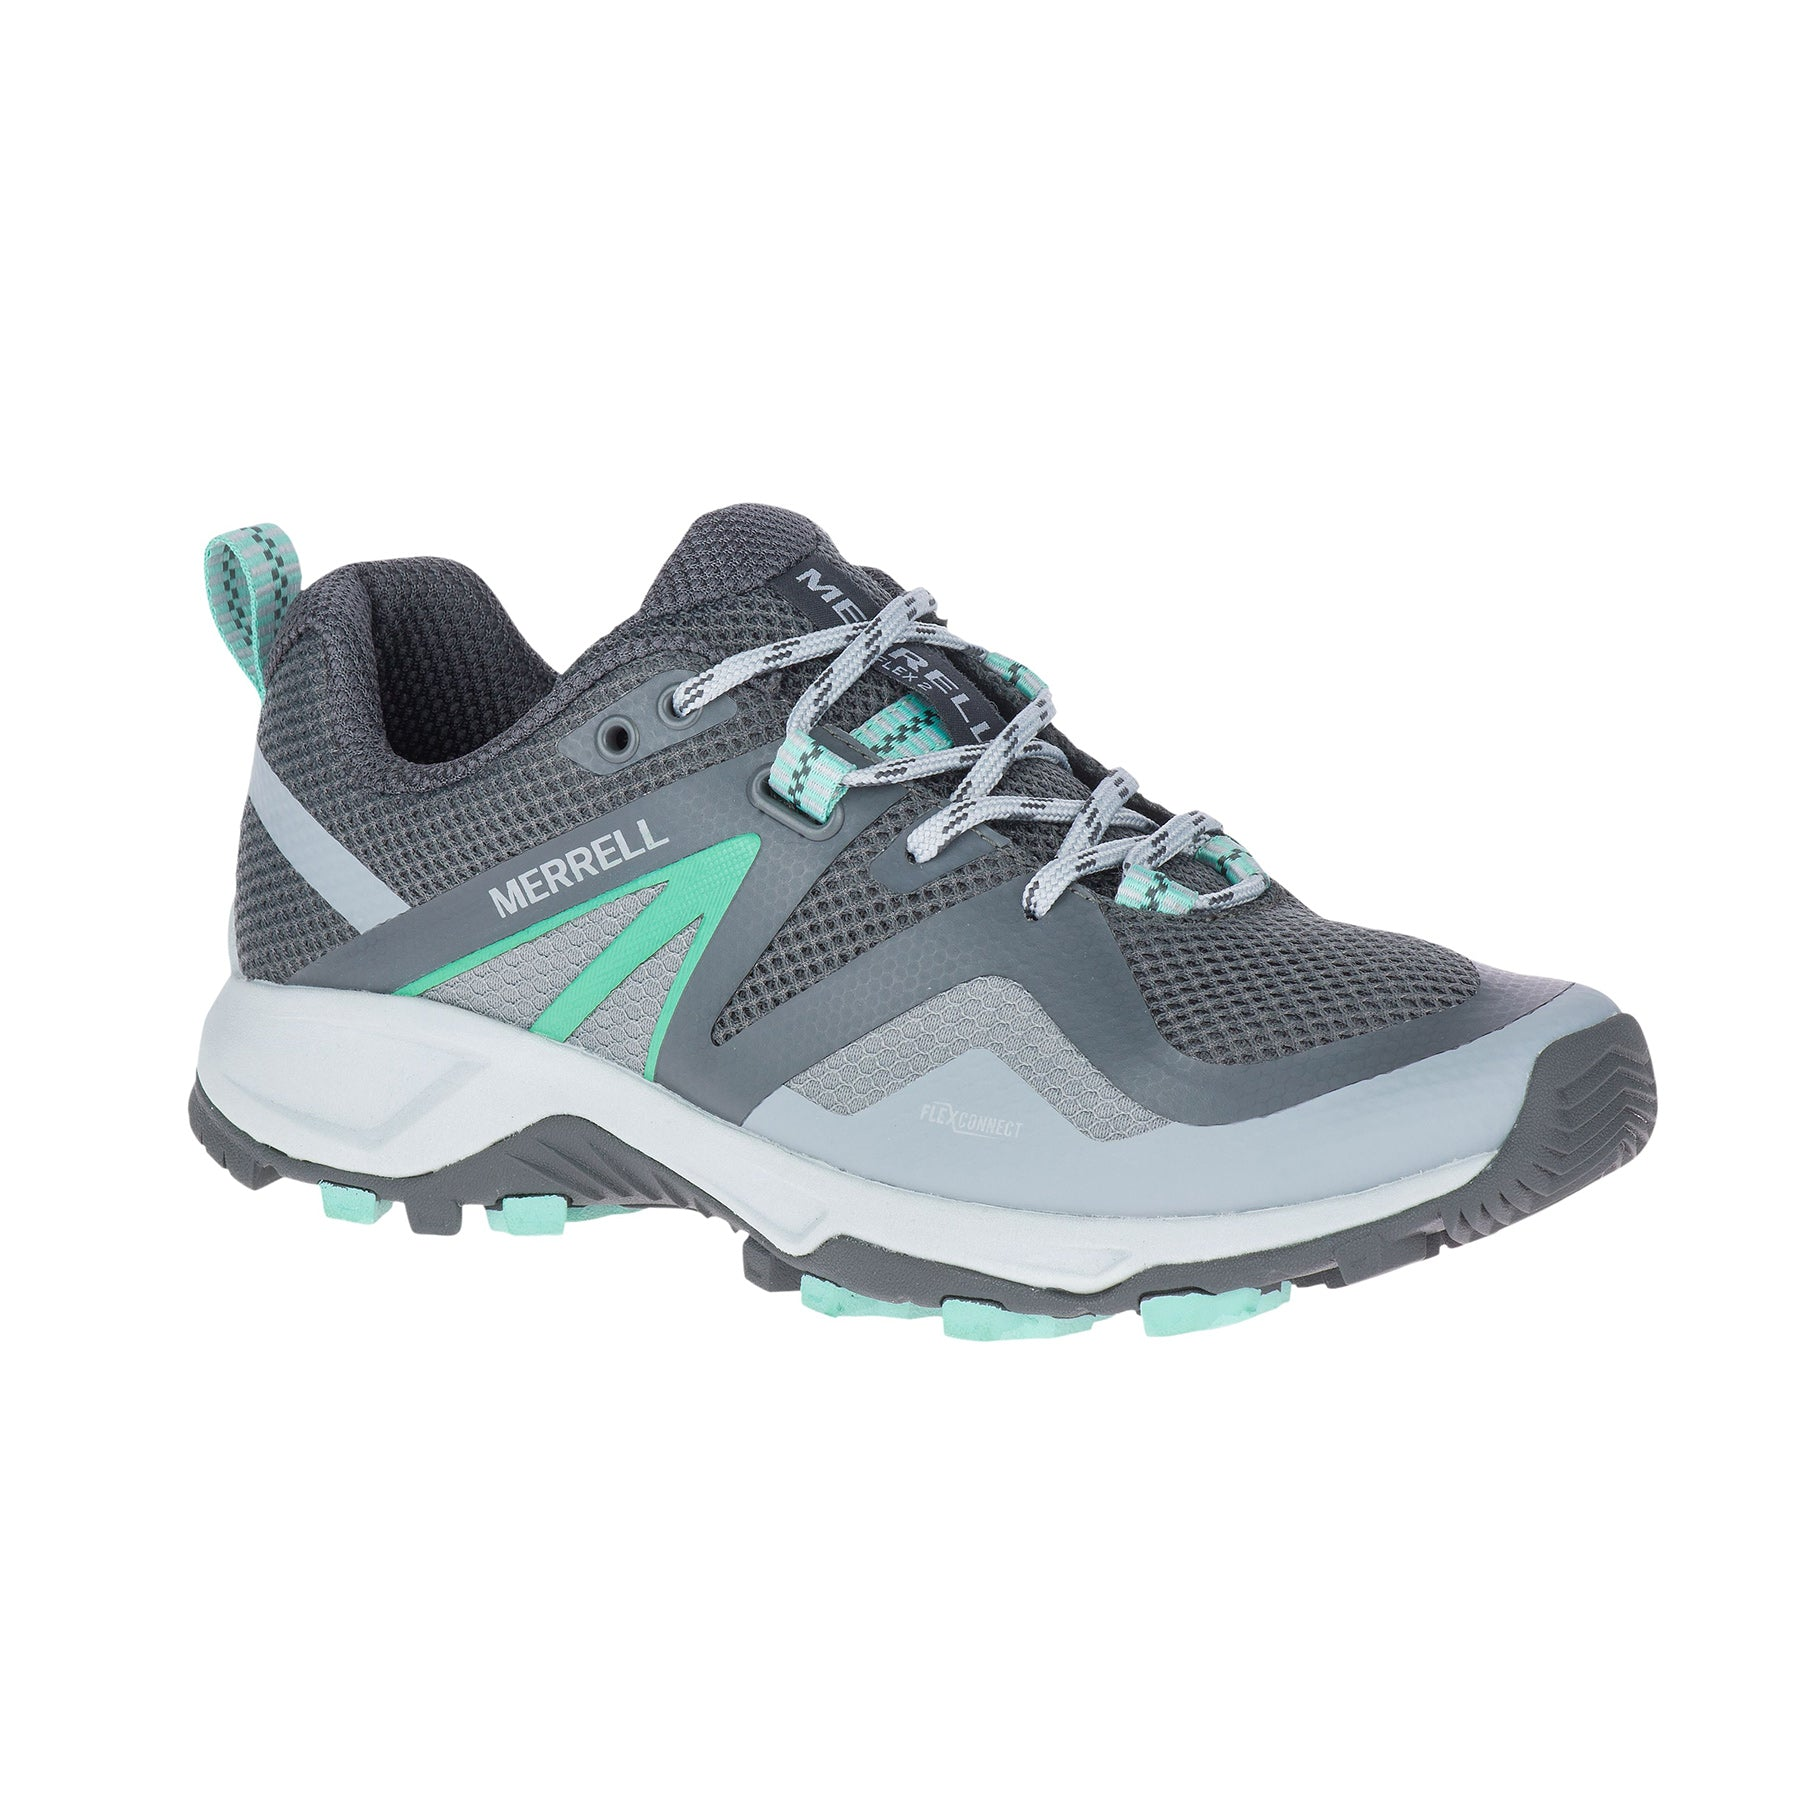 merrell mqm 2 flex womens hiking shoe grey and teal side view